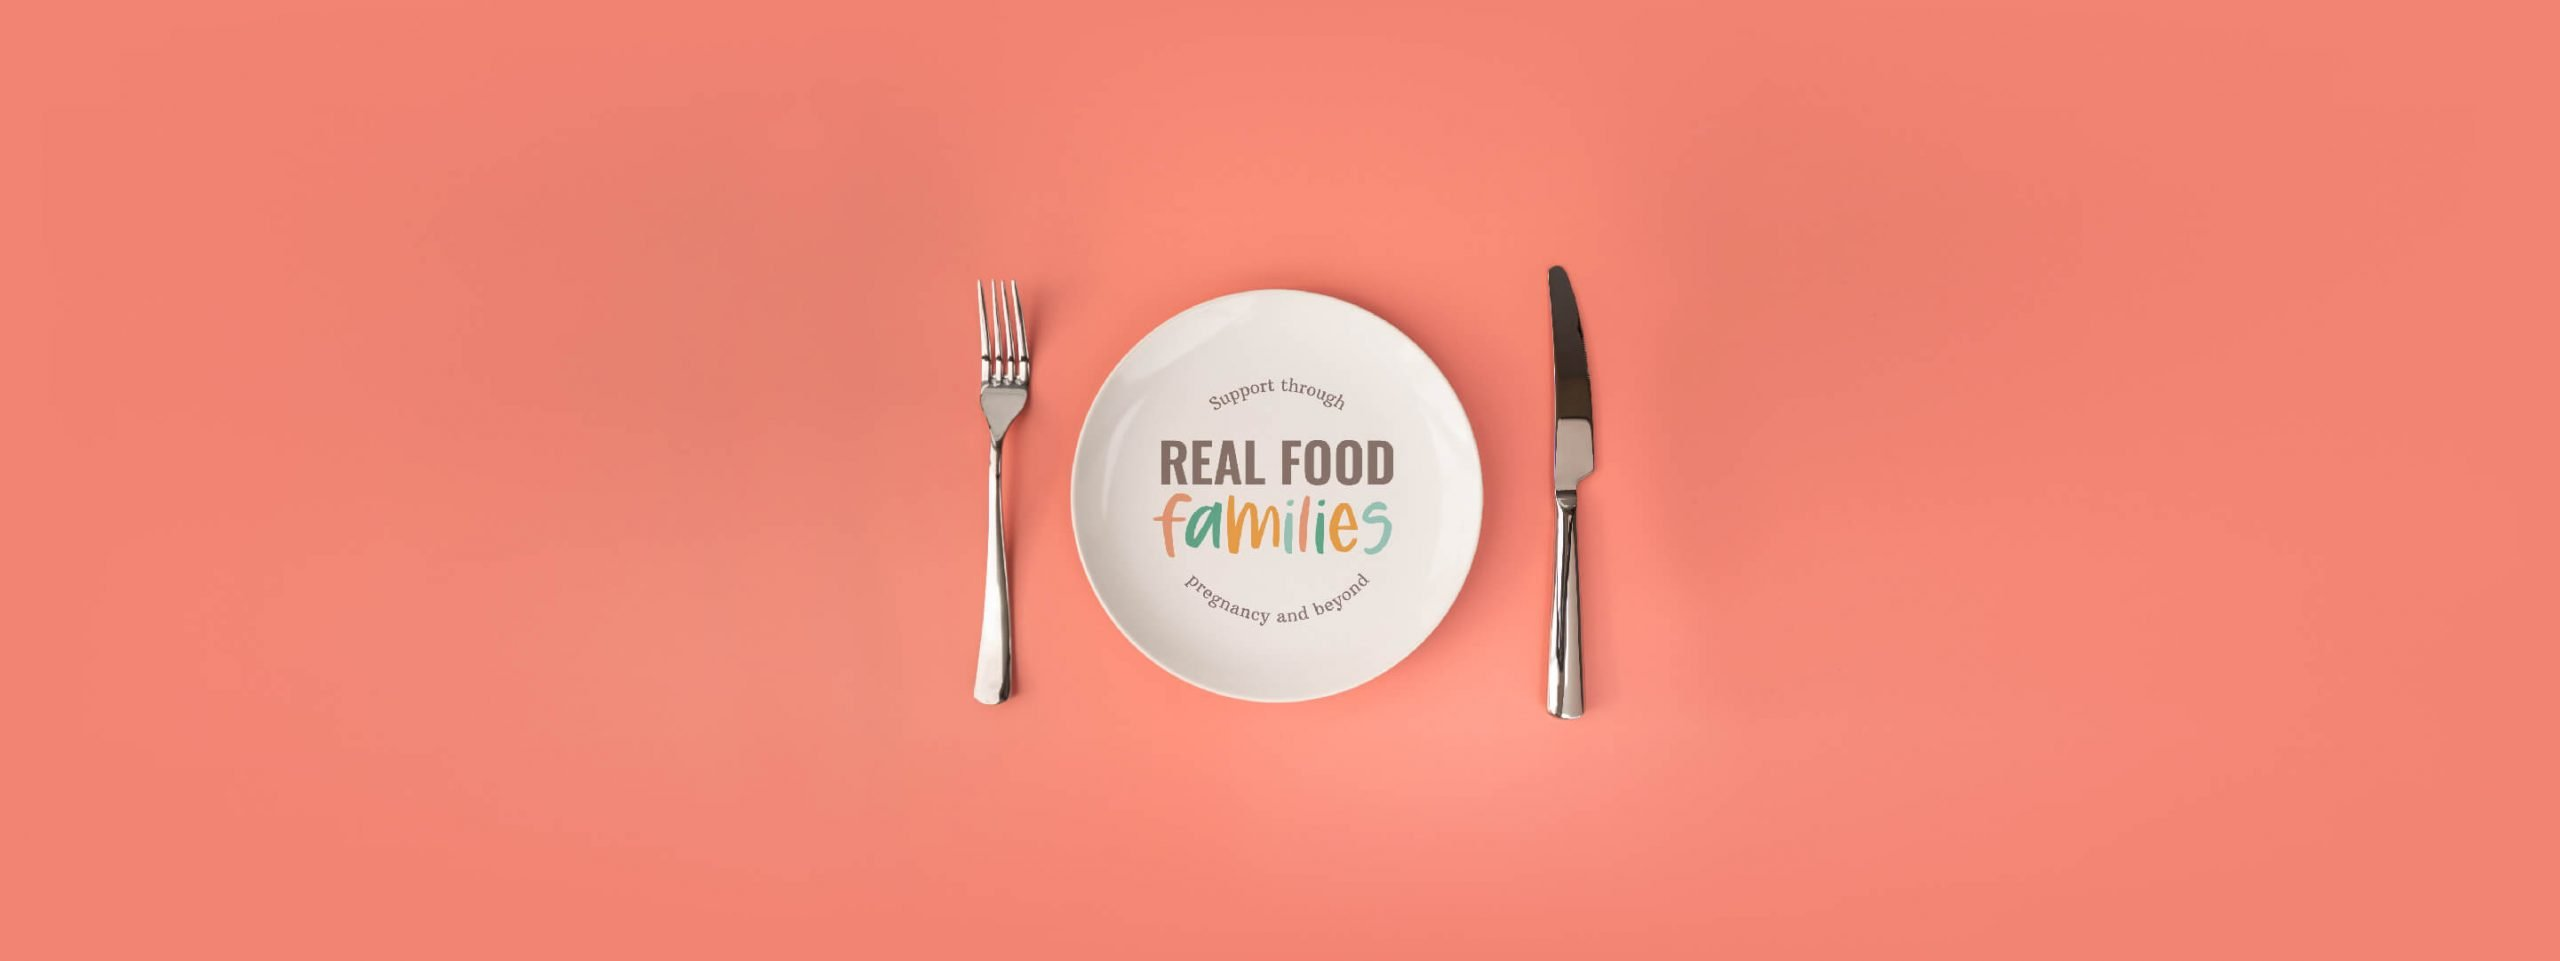 Real food Families Logo Design shown on a dinner plate